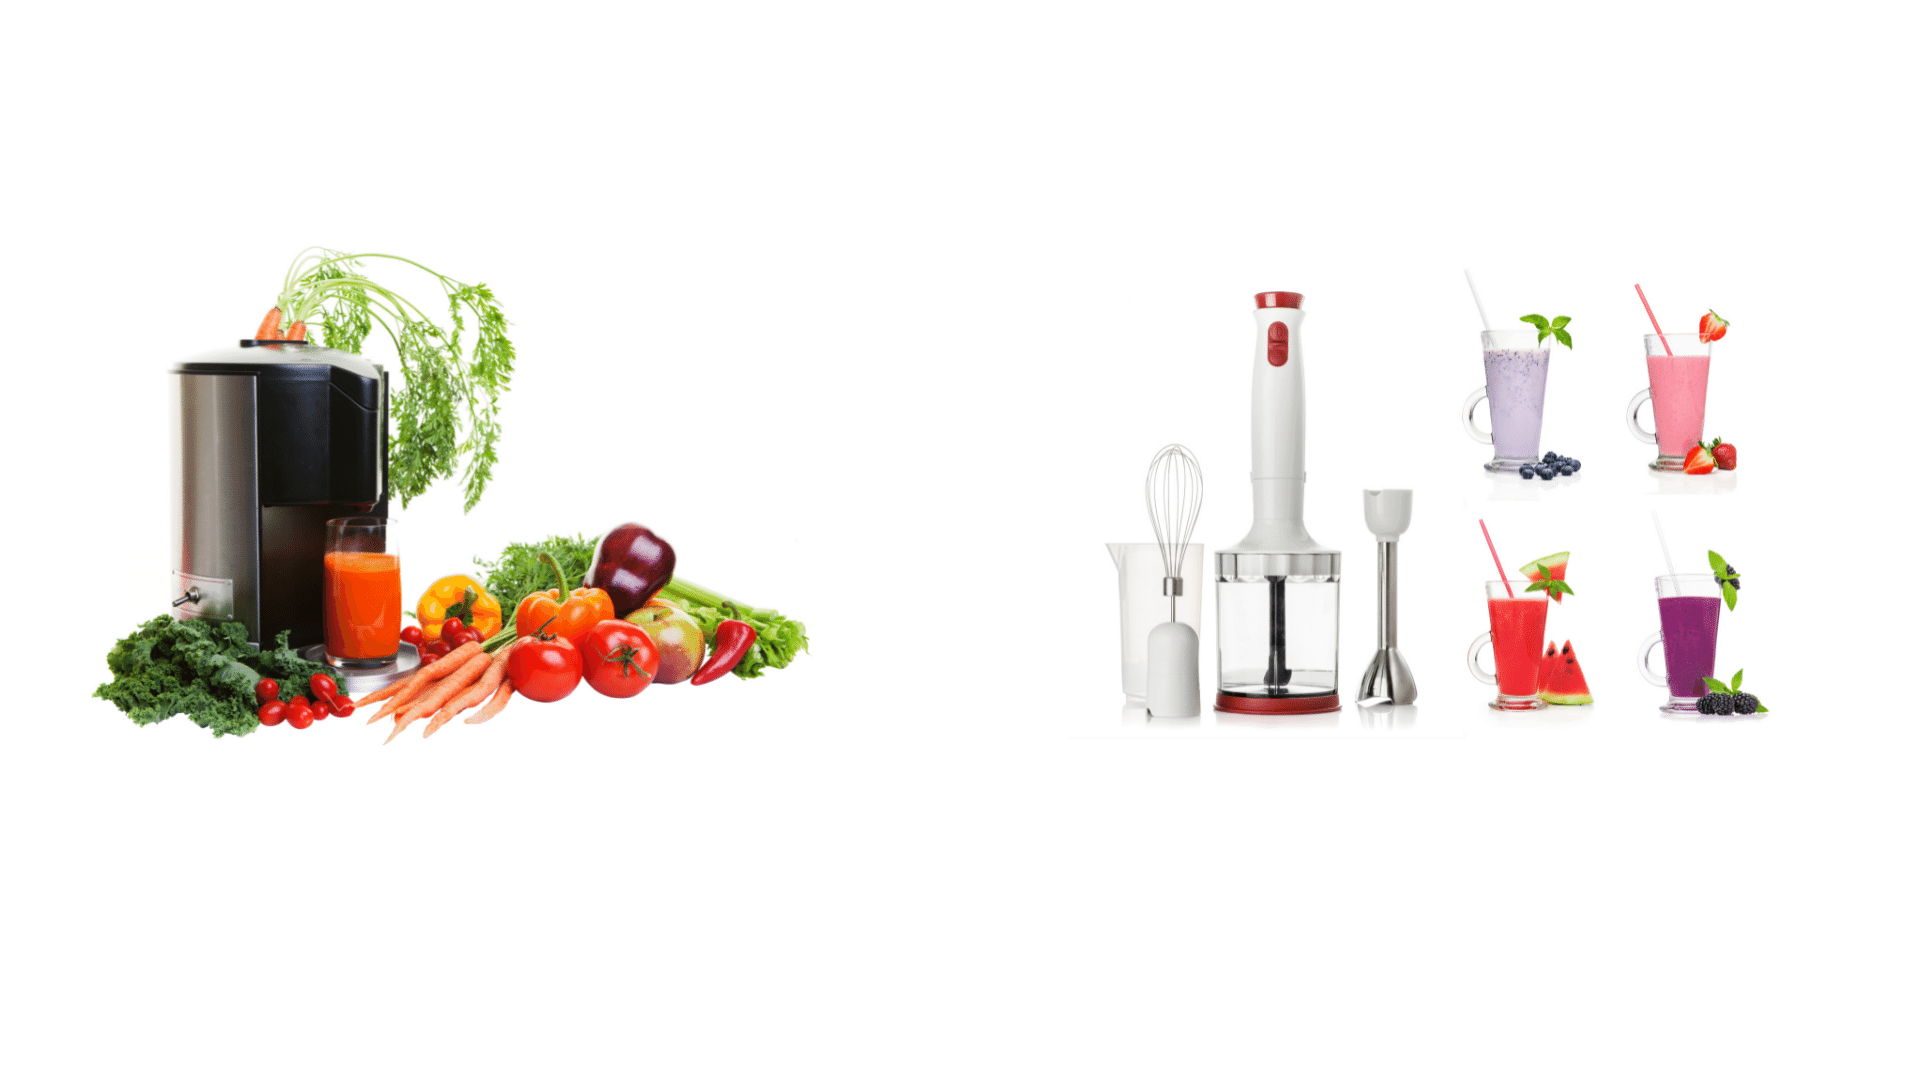 Juicer vs Smoothie: What's the difference and which one to choose? 3